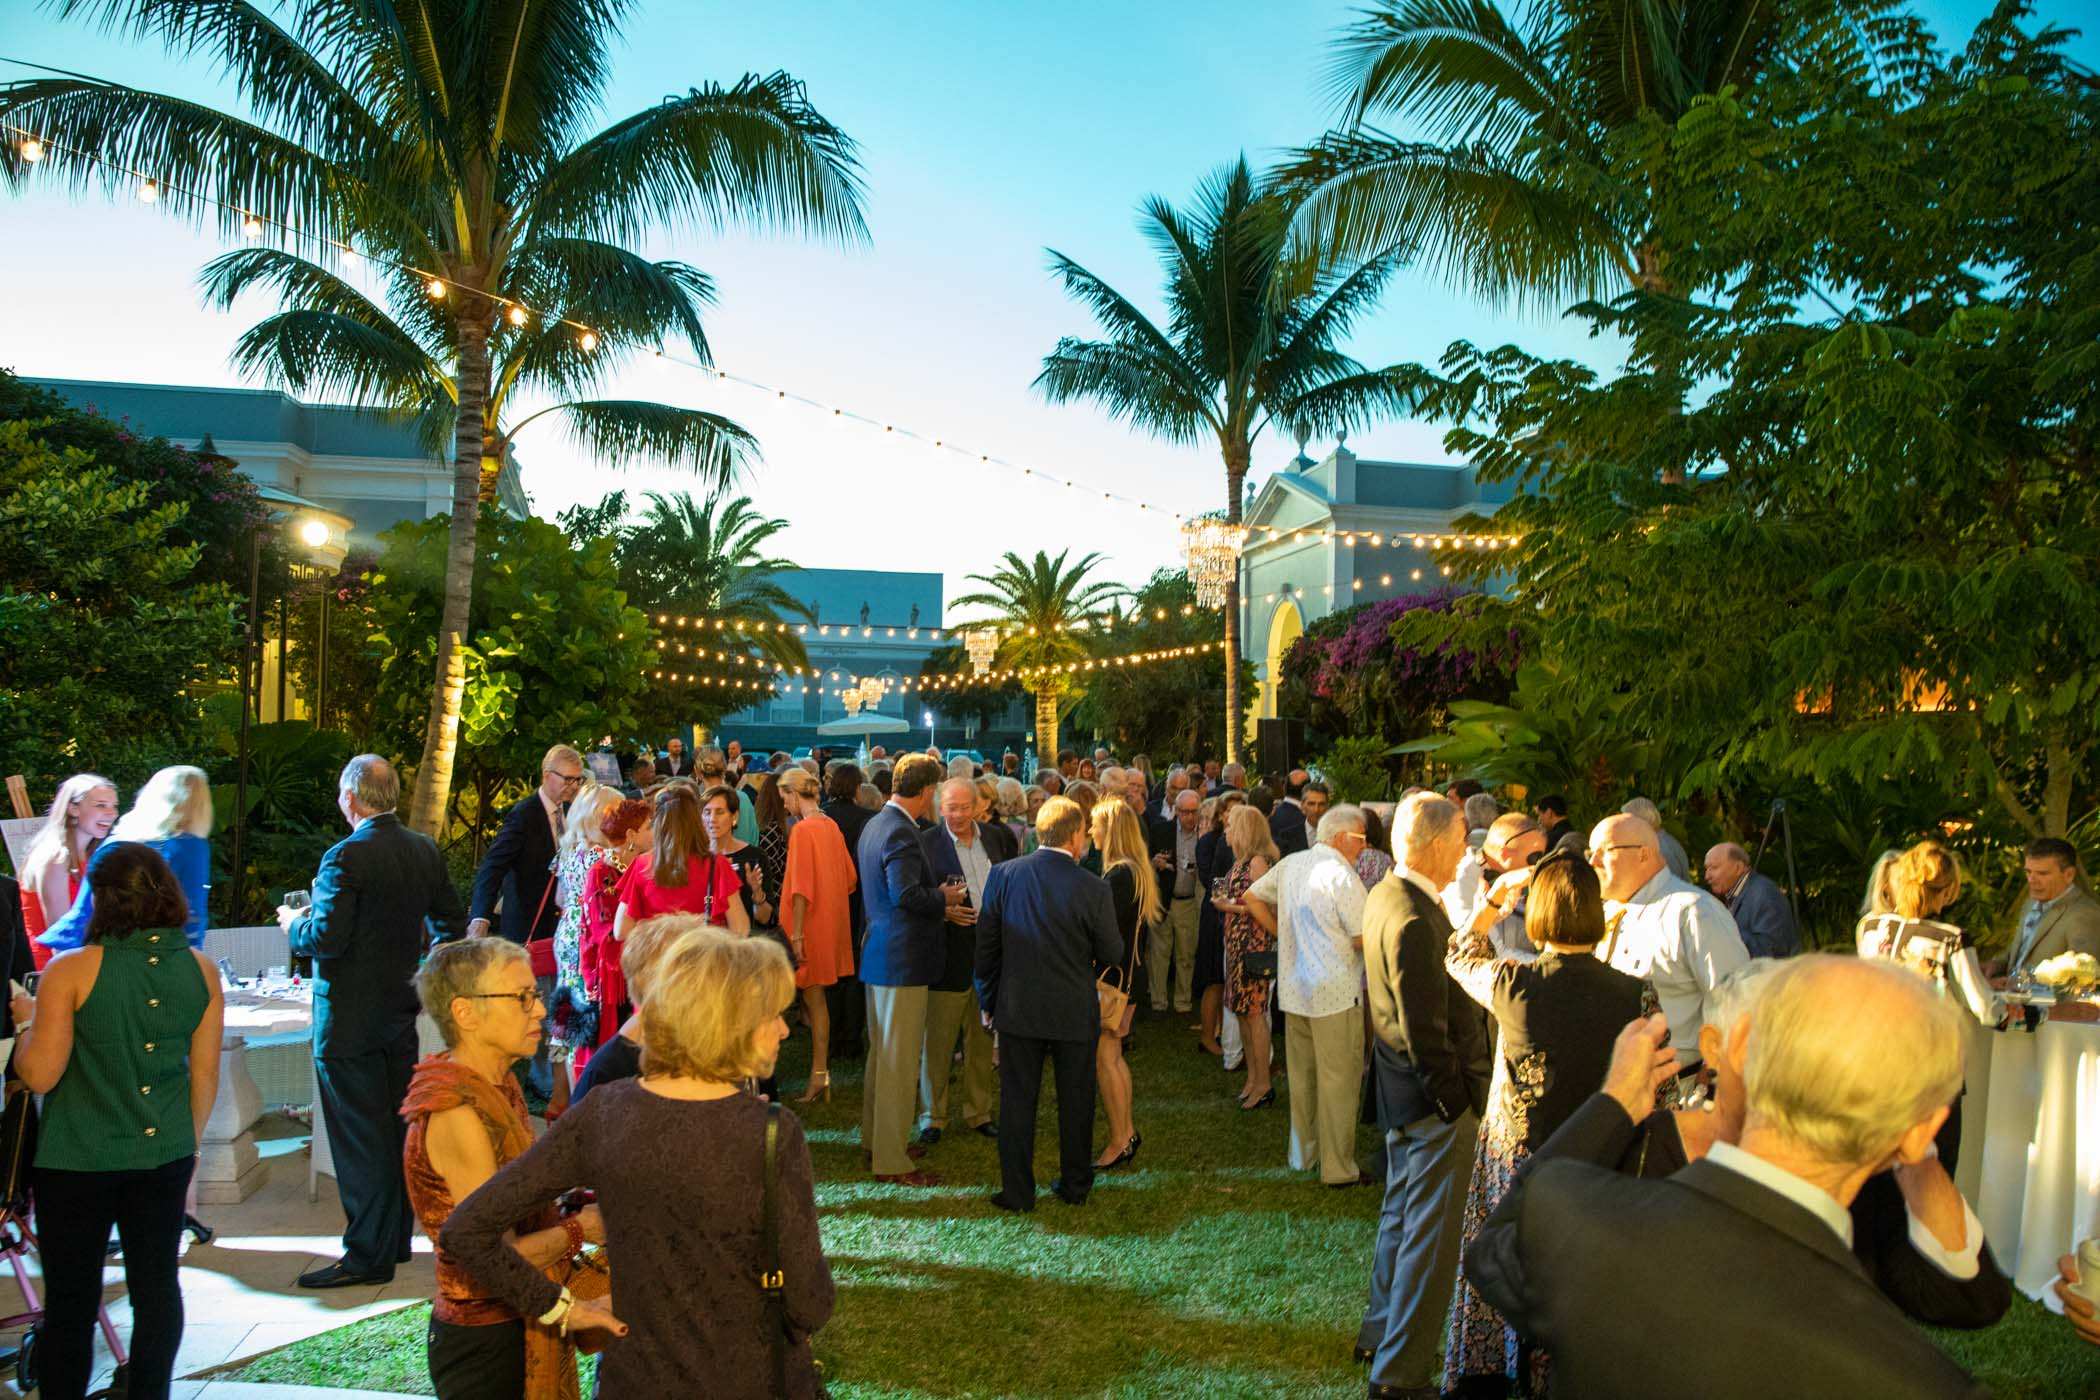 The 75th Anniversary of the Palm Beach Civic Association at the Royal Ponciana in Palm Beach Florida November 26, 2018 with Live Painting by Lydia Marie Elizabeth in watercolor .jpg